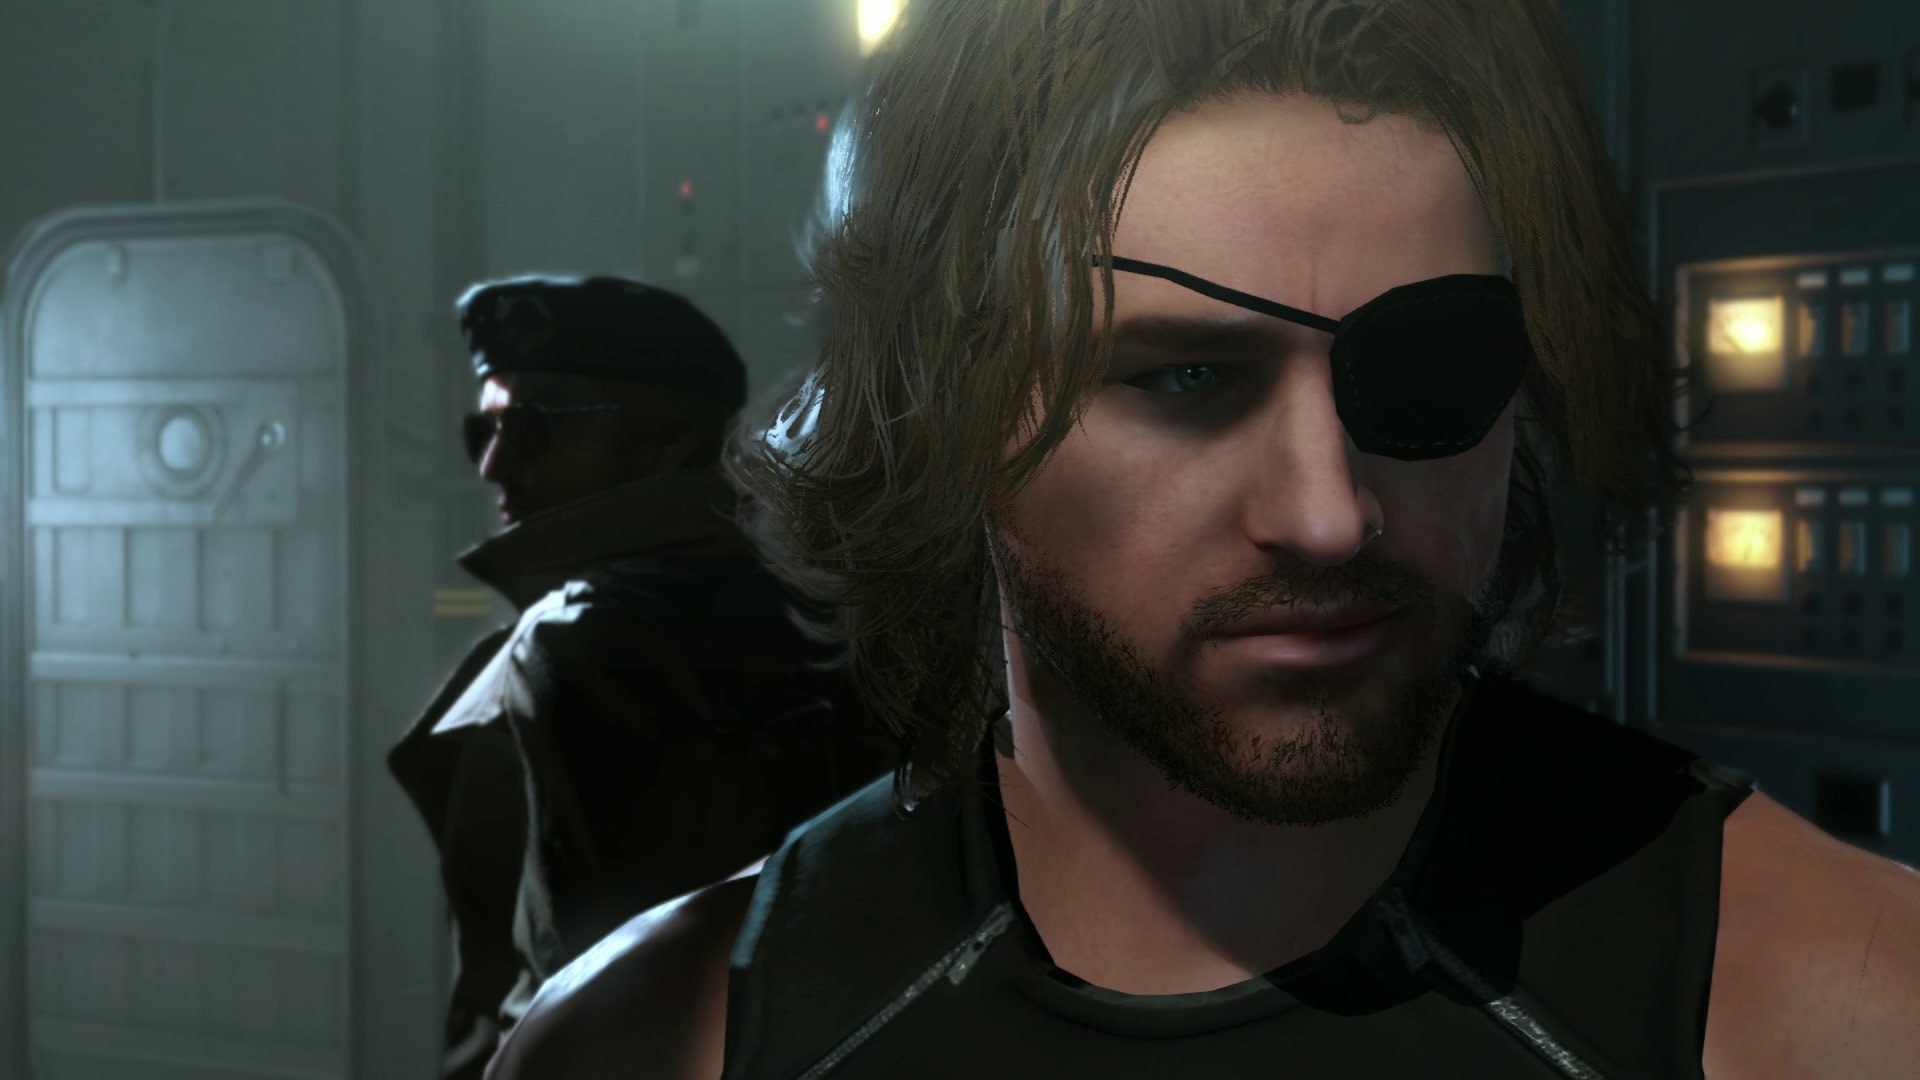 You Can Now Play Metal Gear Solid 5 As Snake From Escape